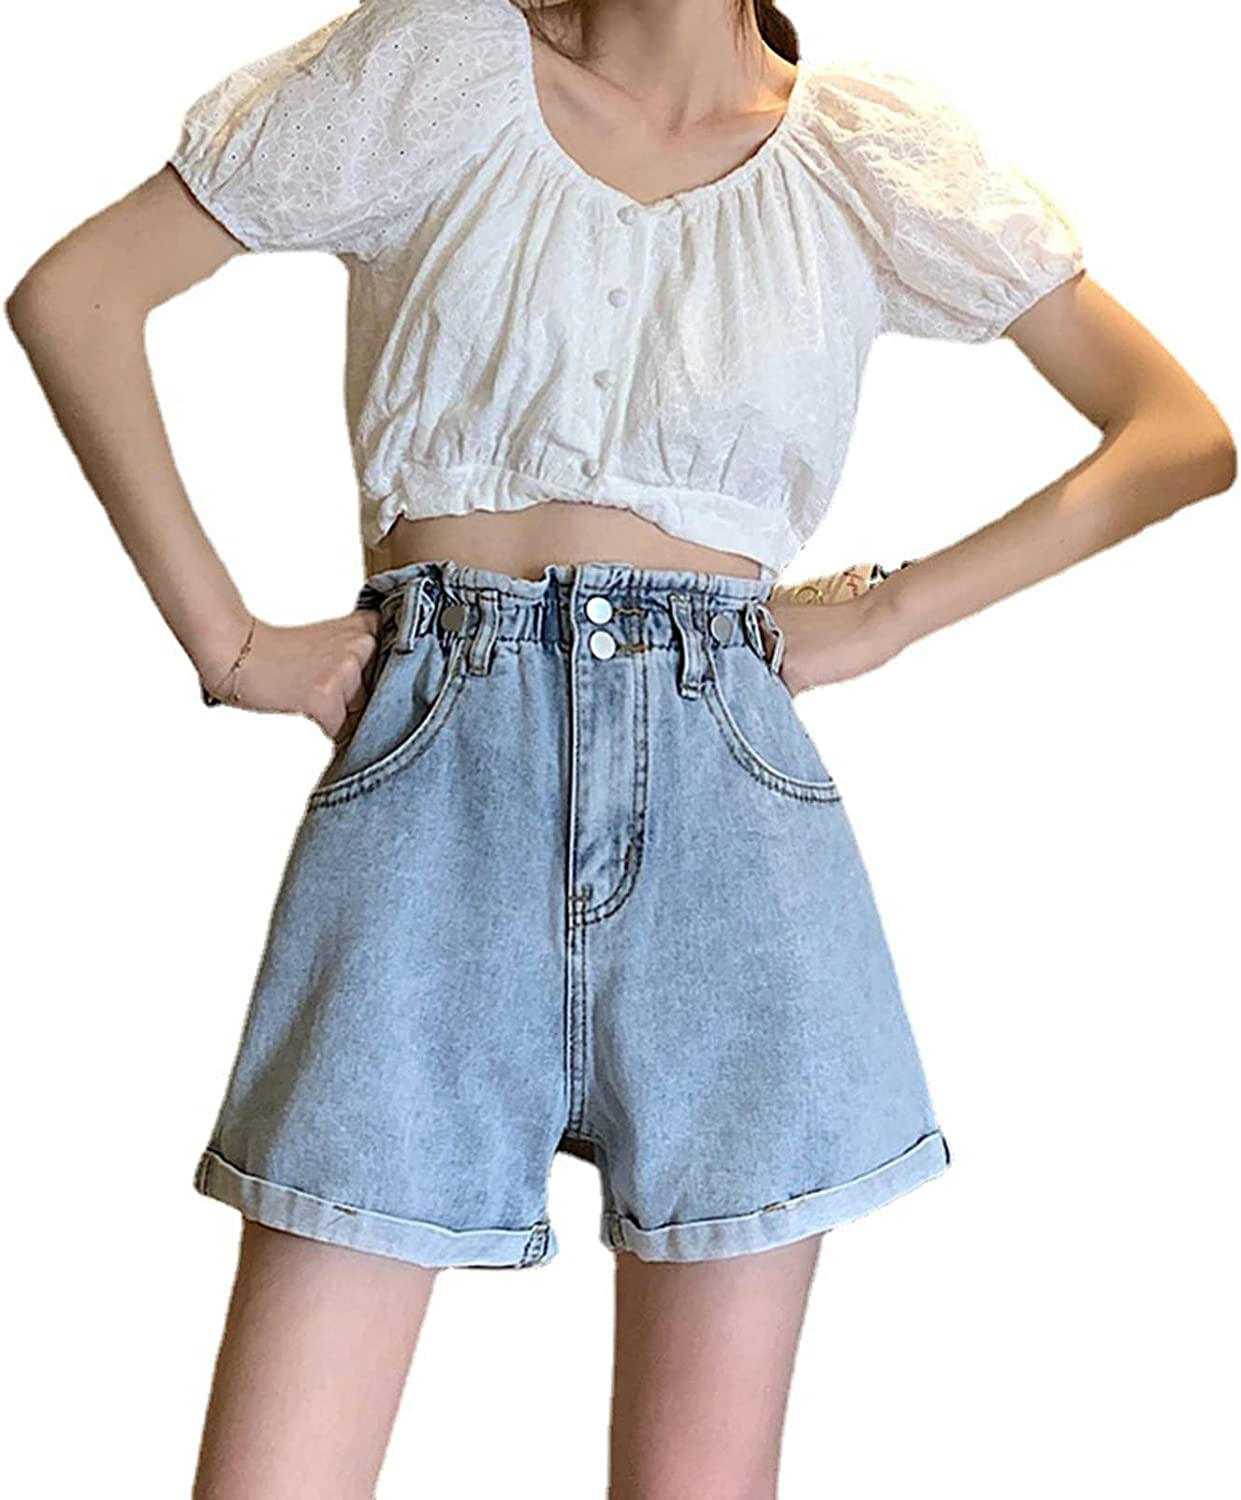 Direct store Casual Jeans for Womens Student New York Mall Retro Summer Shorts Bottoms Simp